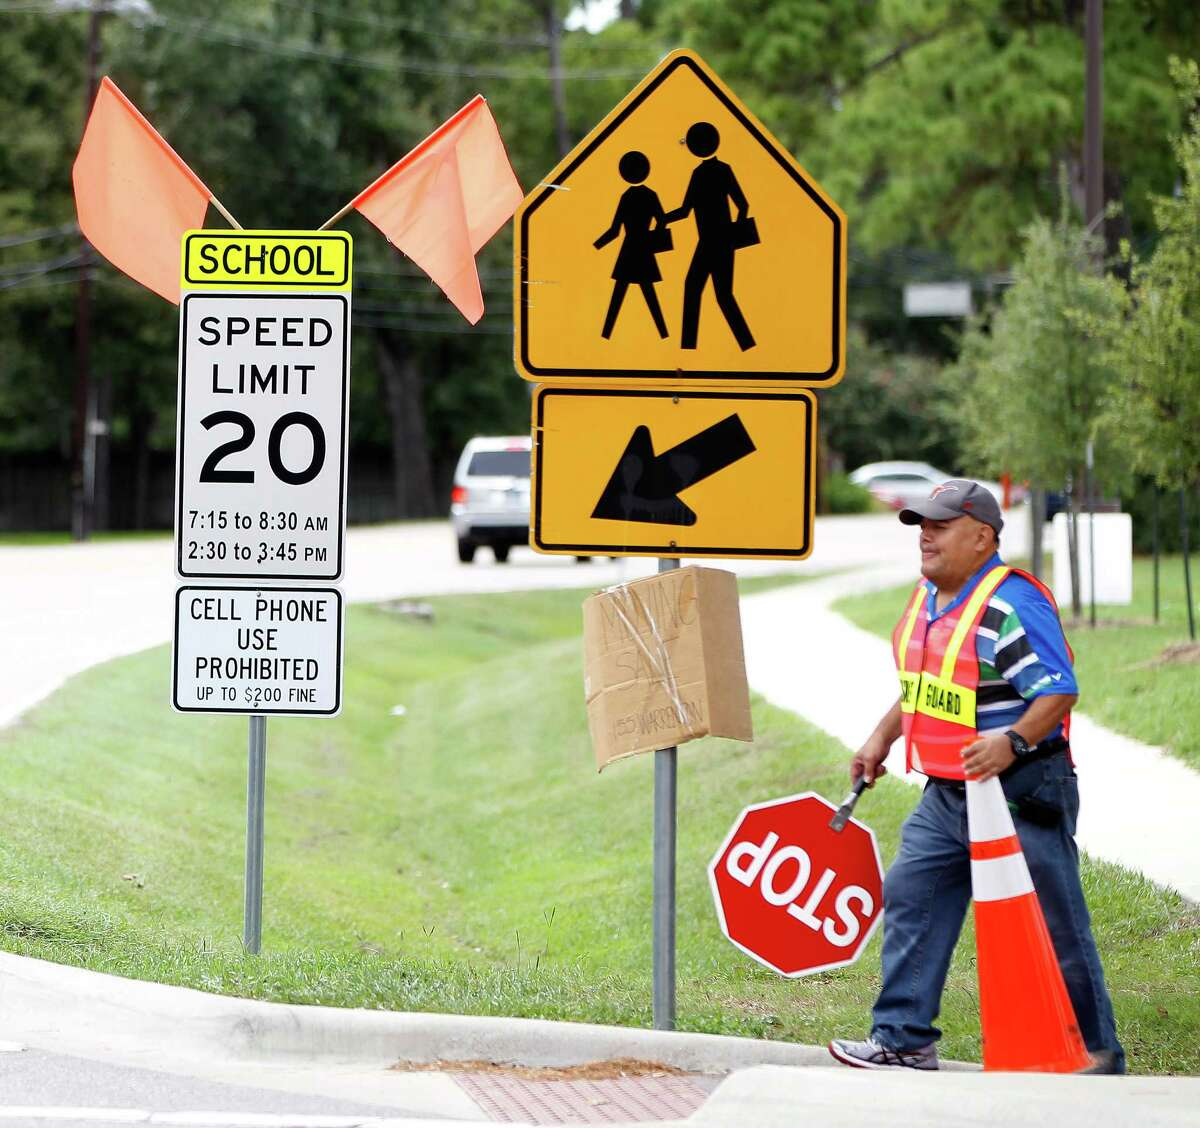 Jesus Ochoa helps children from Frostwood Elementary School cross on Memorial Drive as they walk home from school on Tuesday, Sept. 1, 2015.A 2009 state law prohibits texting and hand-held cell phone use in school zones, but cities must post signs to enforce the ban.